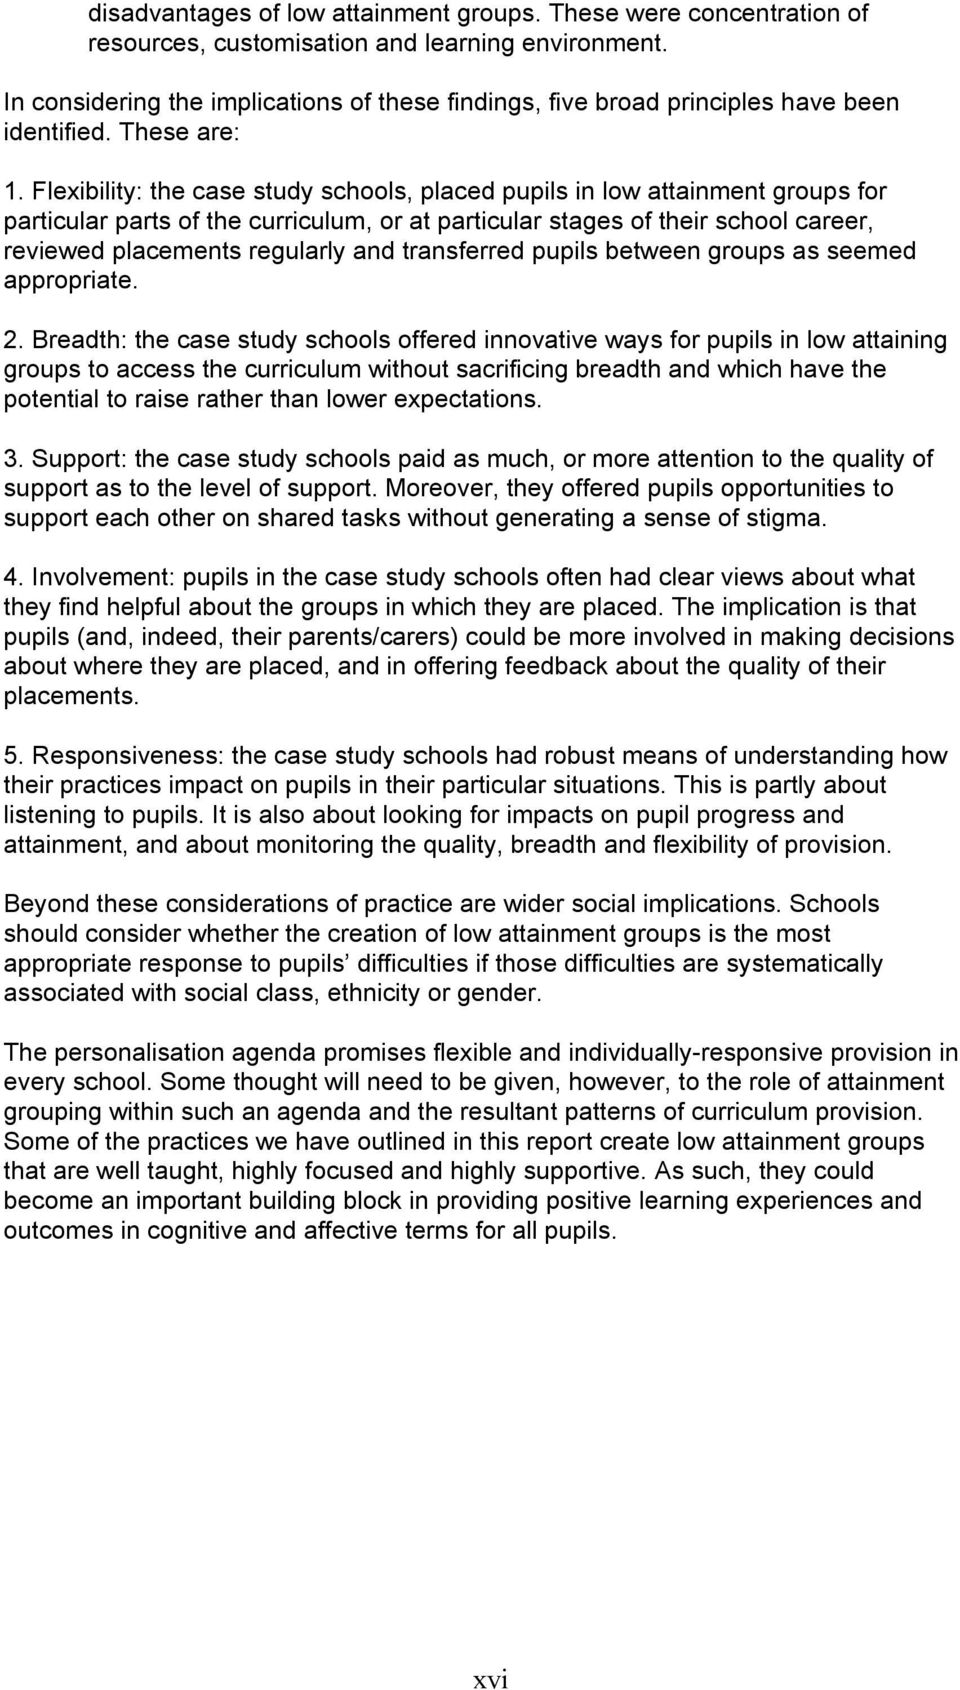 Flexibility: the case study schools, placed pupils in low attainment groups for particular parts of the curriculum, or at particular stages of their school career, reviewed placements regularly and